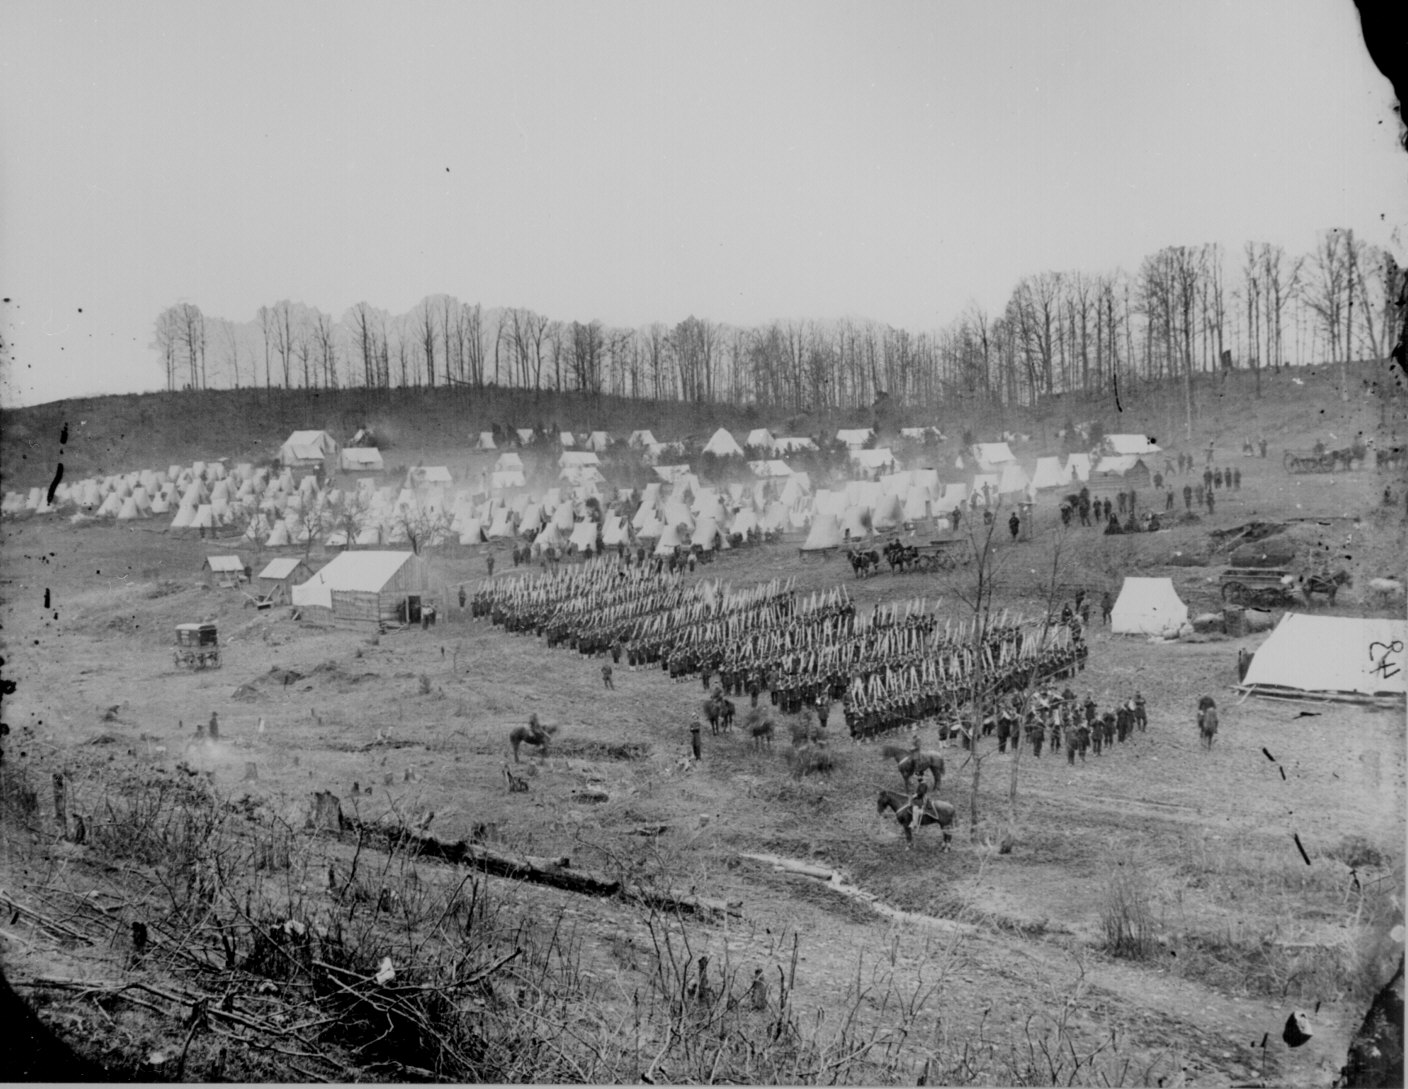 the significance and impact of the battle of antietam or sharpsburg during the us civil war Commentary and archival information about battle of antietam attractions among civil war battle at the antietam national battlefield in sharpsburg.